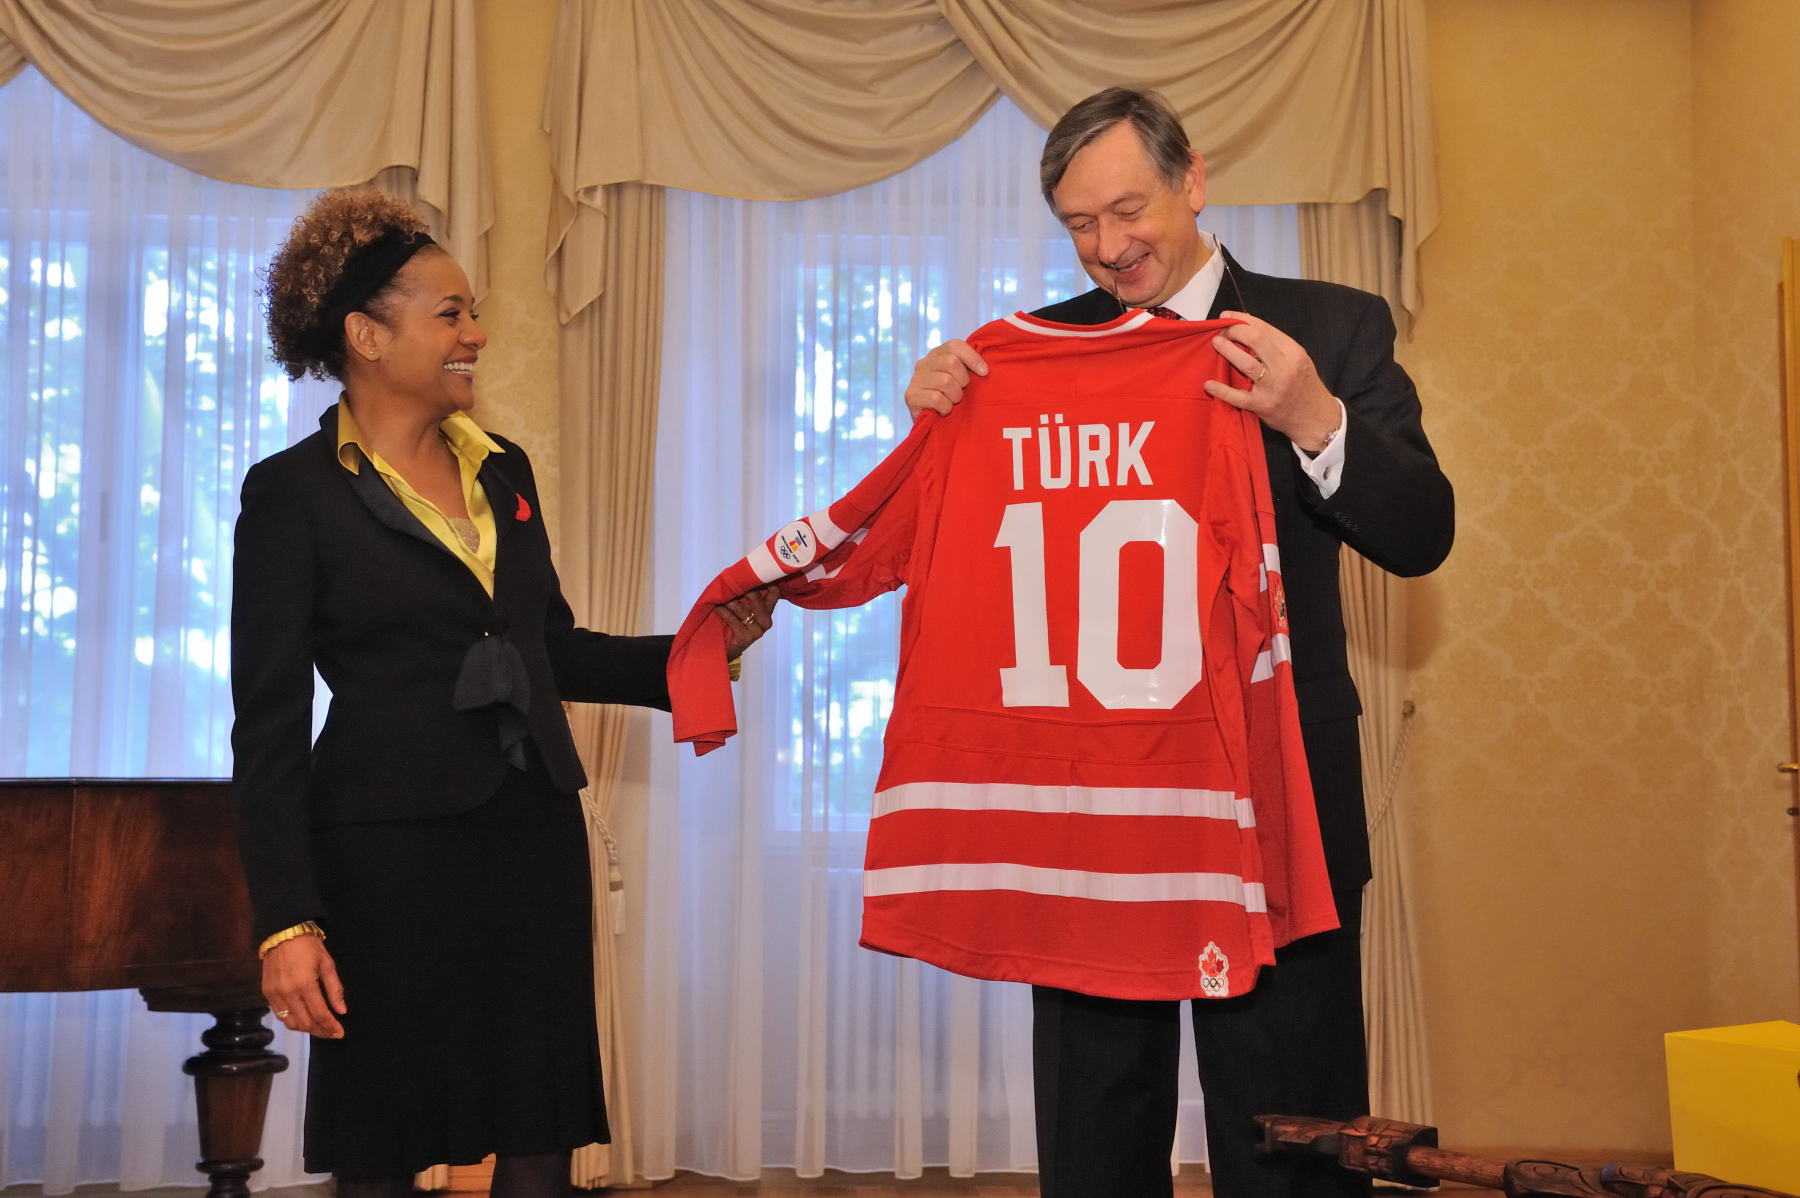 Before leaving Brdo Castle, the Governor General gave the President a hockey jersey.